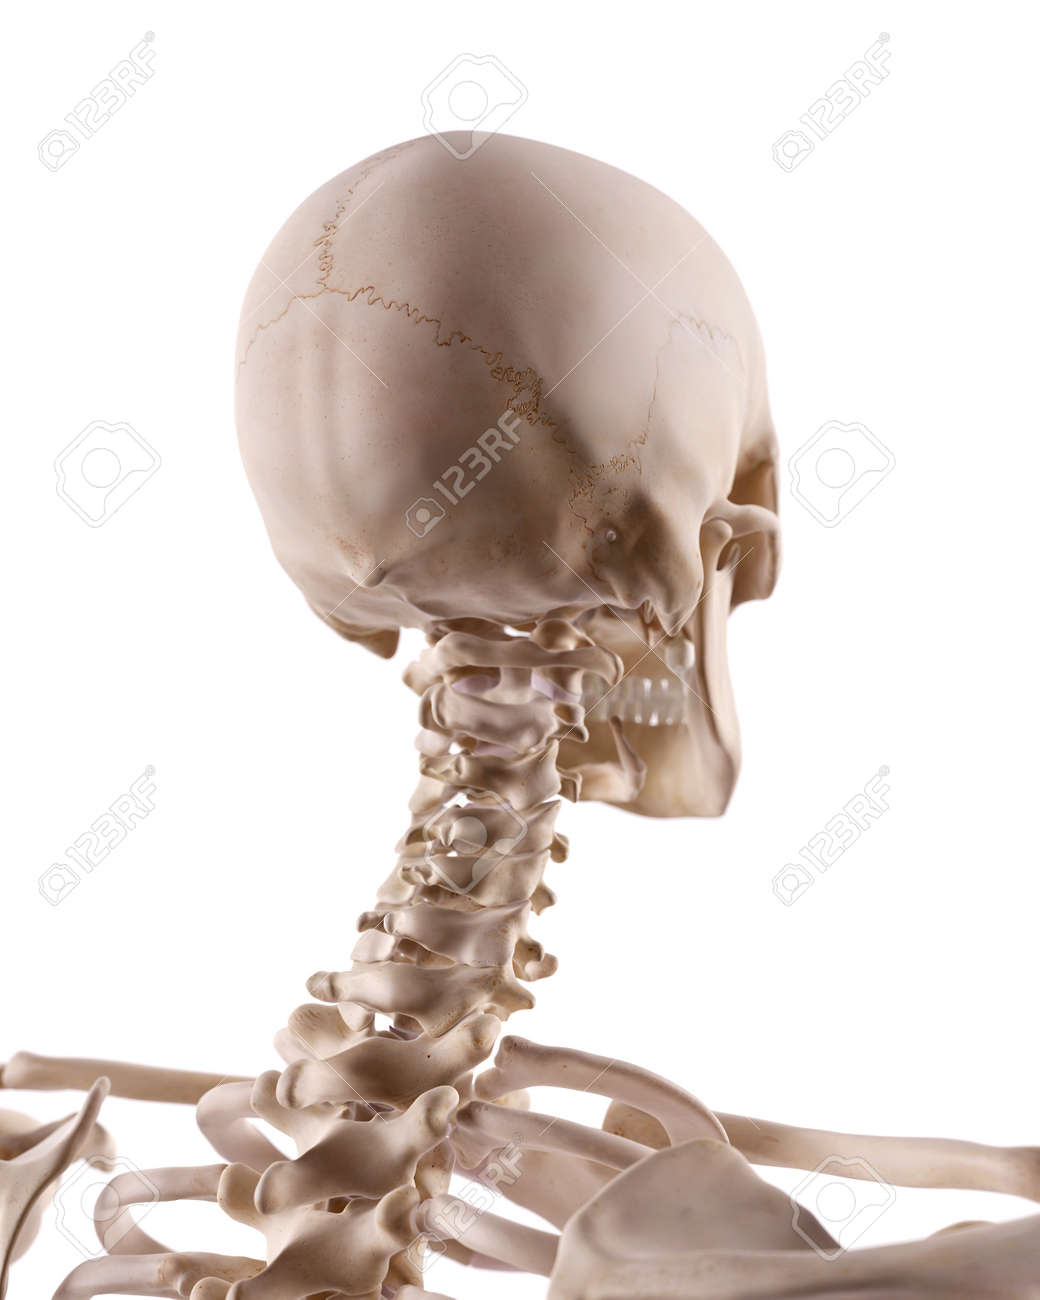 Medically Accurate Illustration Of The Cervical Spine And Skull ...